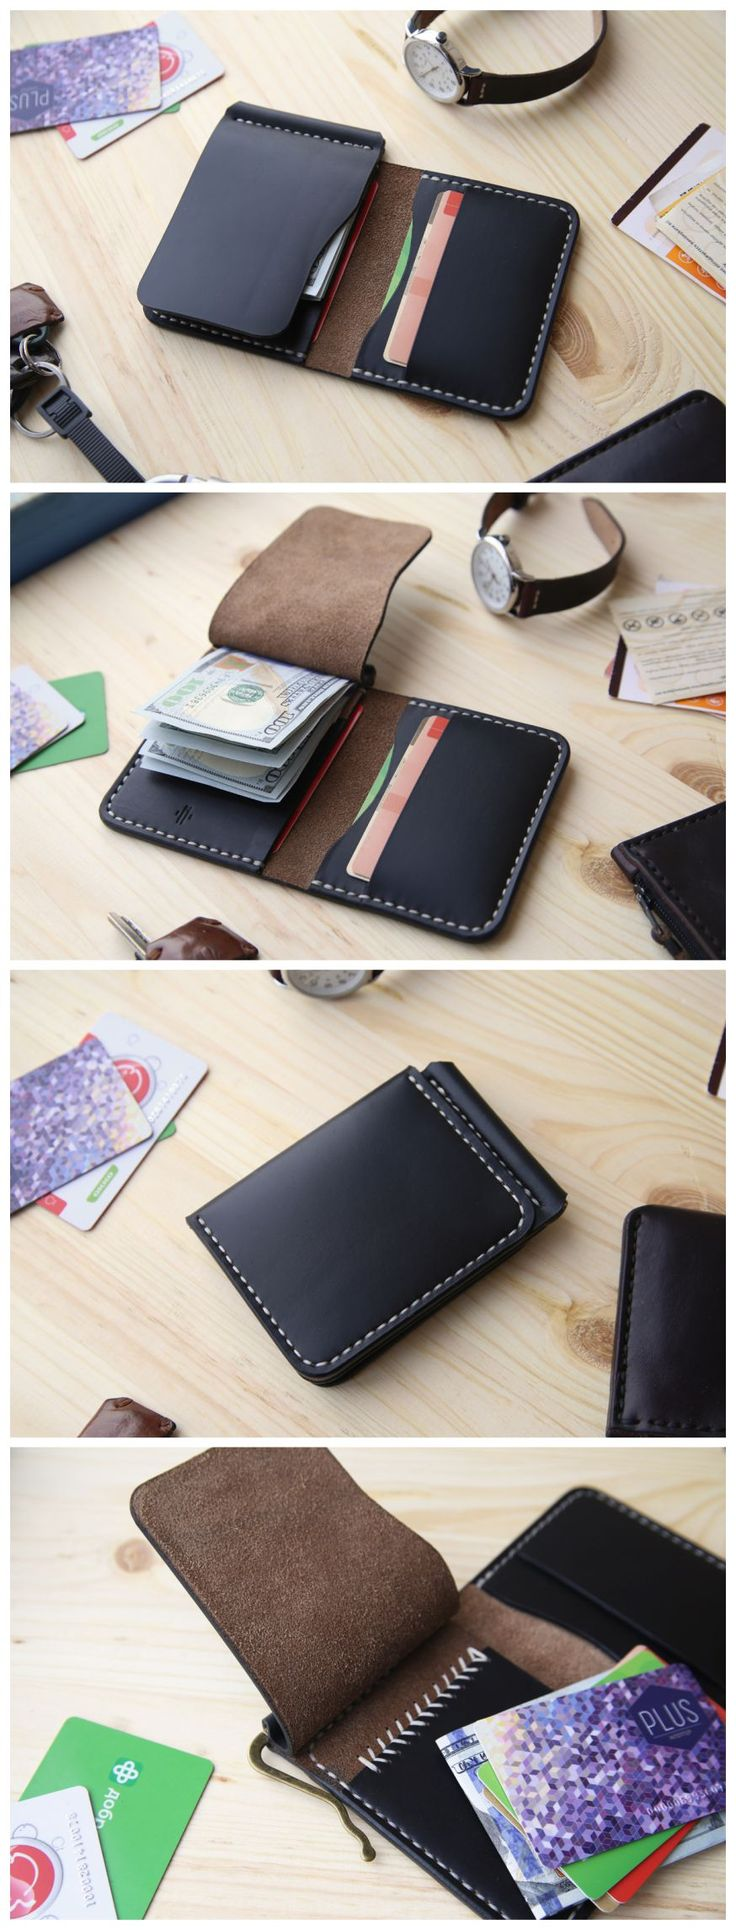 Horween Chromexcel Money Clip Wallet, Mens Leather Money Clip Wallet, Mens Leather Bifold Wallet #accessories #wallet #leather #horween #horweenwallet #chromexcel #moneyclip #moneyclipwallet #handmade #leathergoods #everydaycary #handcraft #handstitched #leathercraft #bifoldwallet #bifold #cardholder #cardwallet